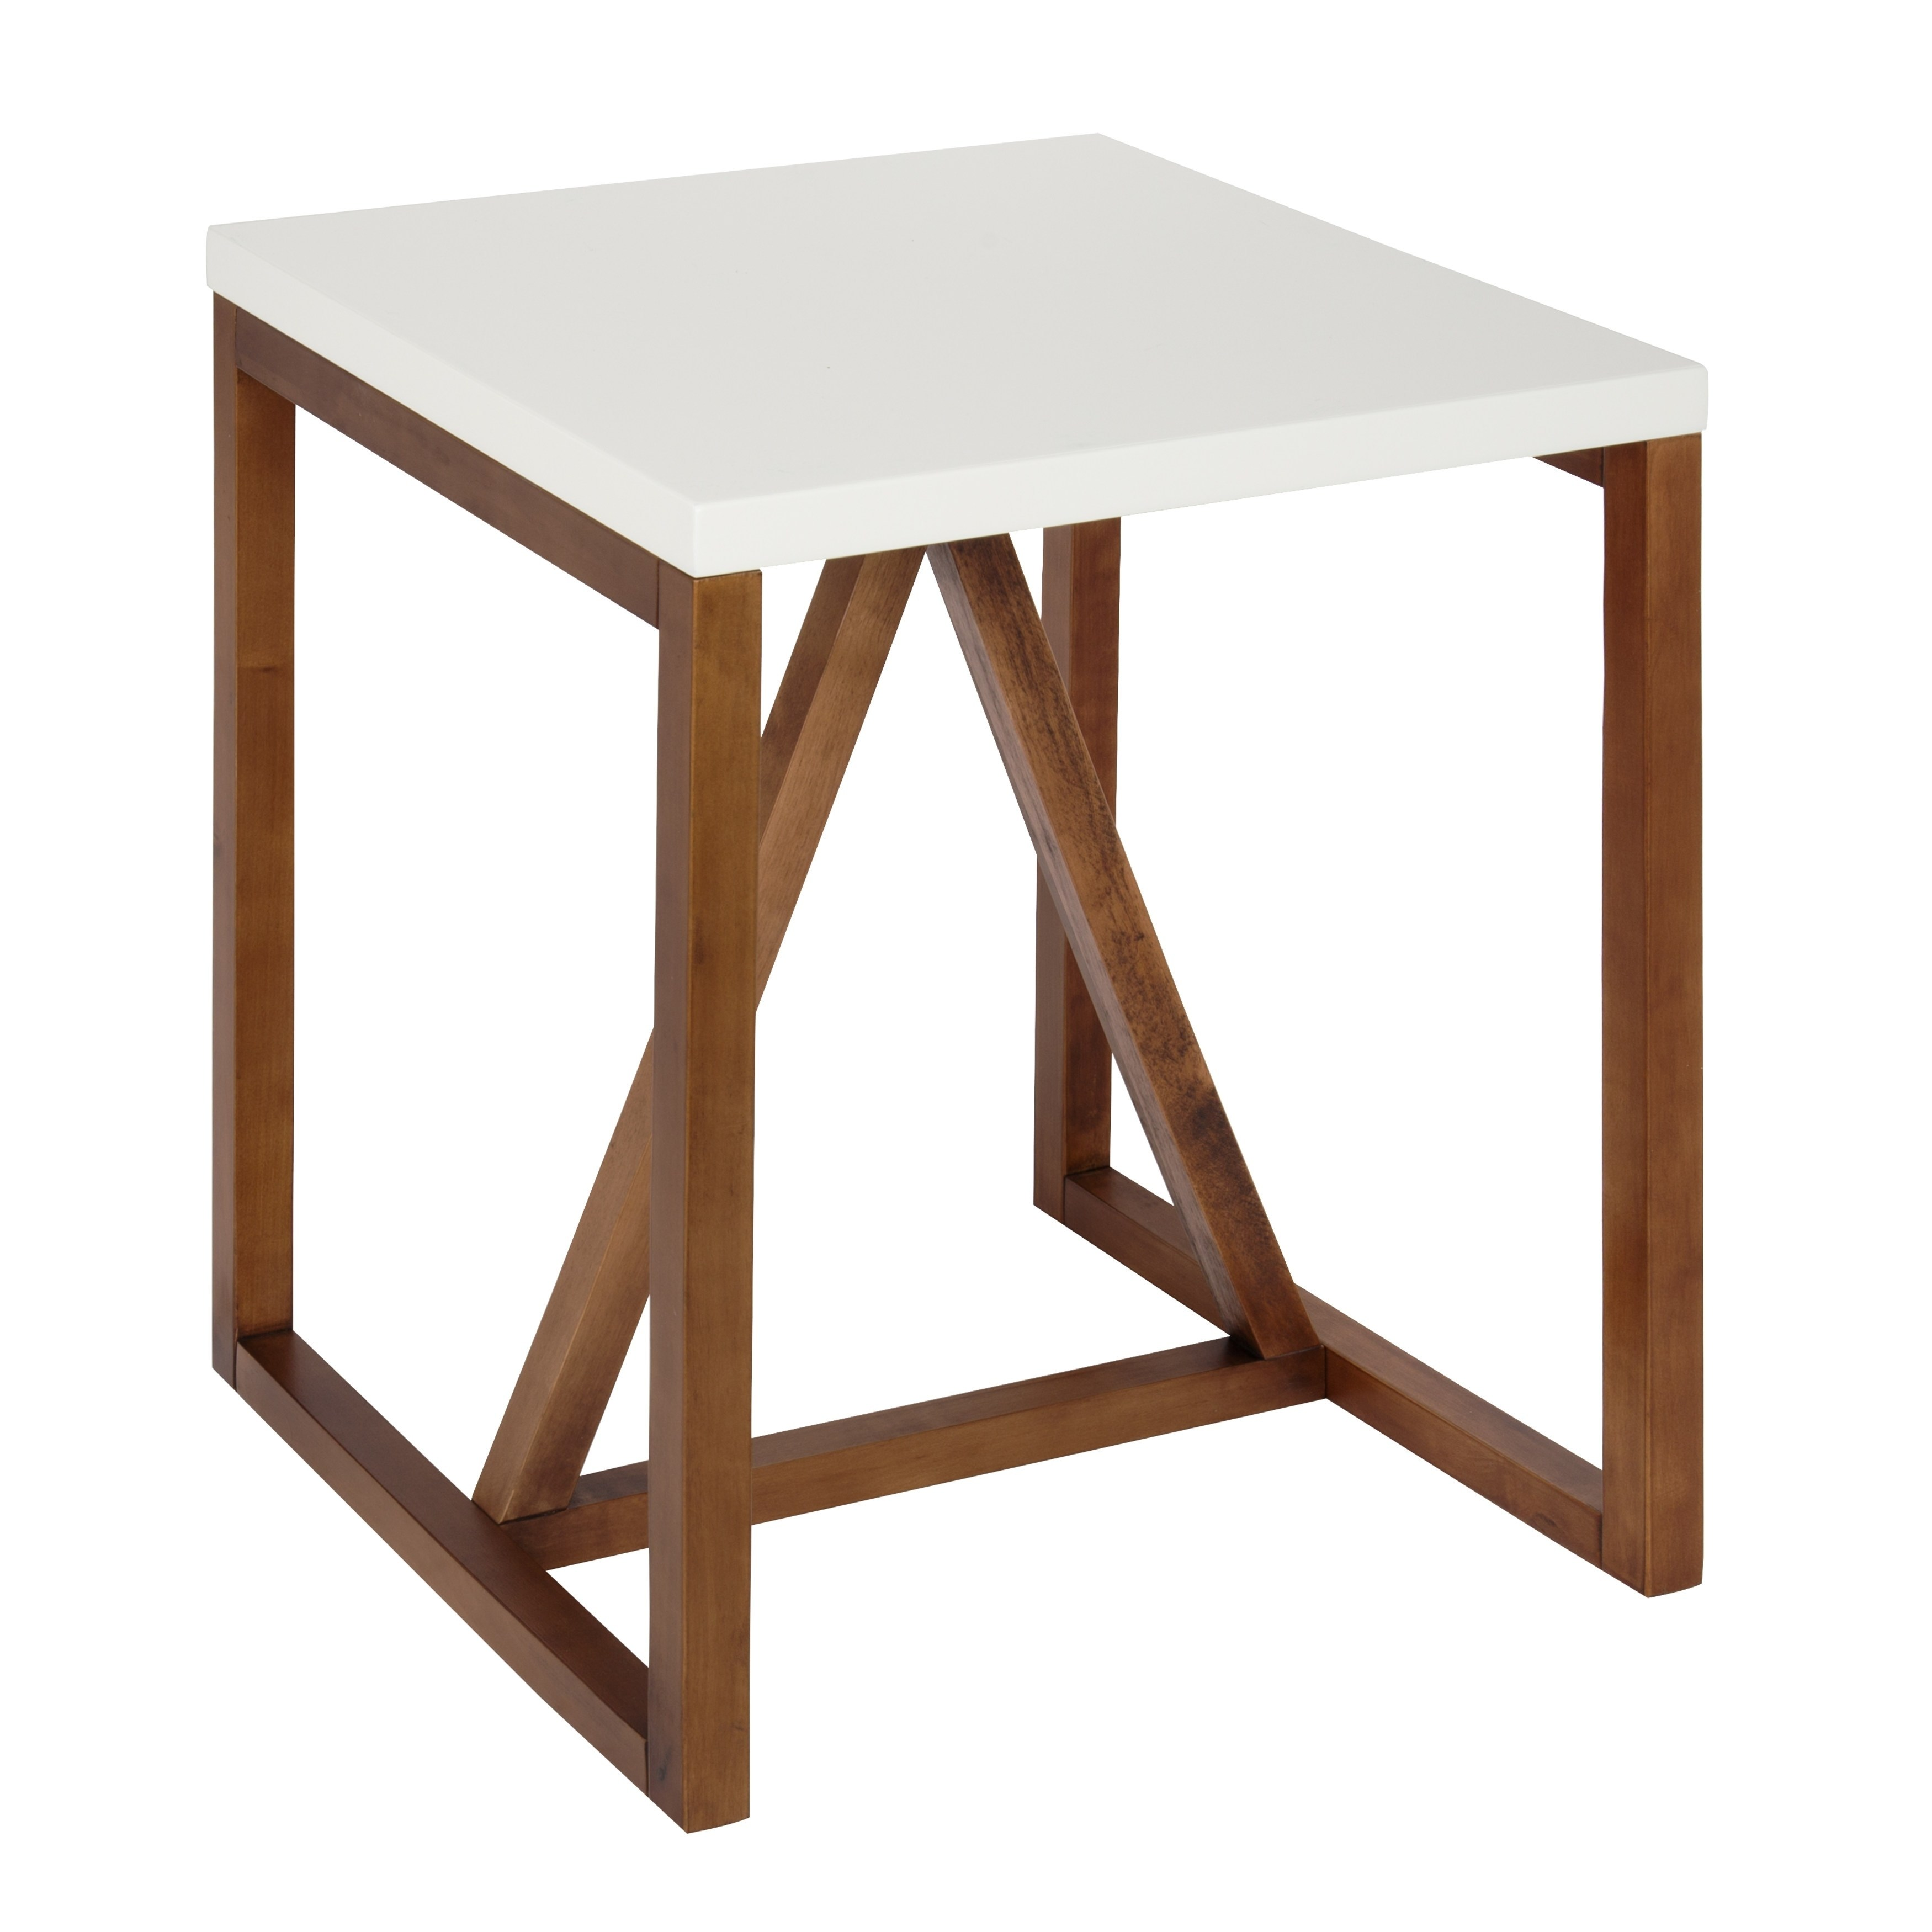 strick bolton kinji wood square side table free kate and laurel kaya outdoor shipping today small drop leaf coffee reclaimed metal end marble bedside target ikea pot rack round